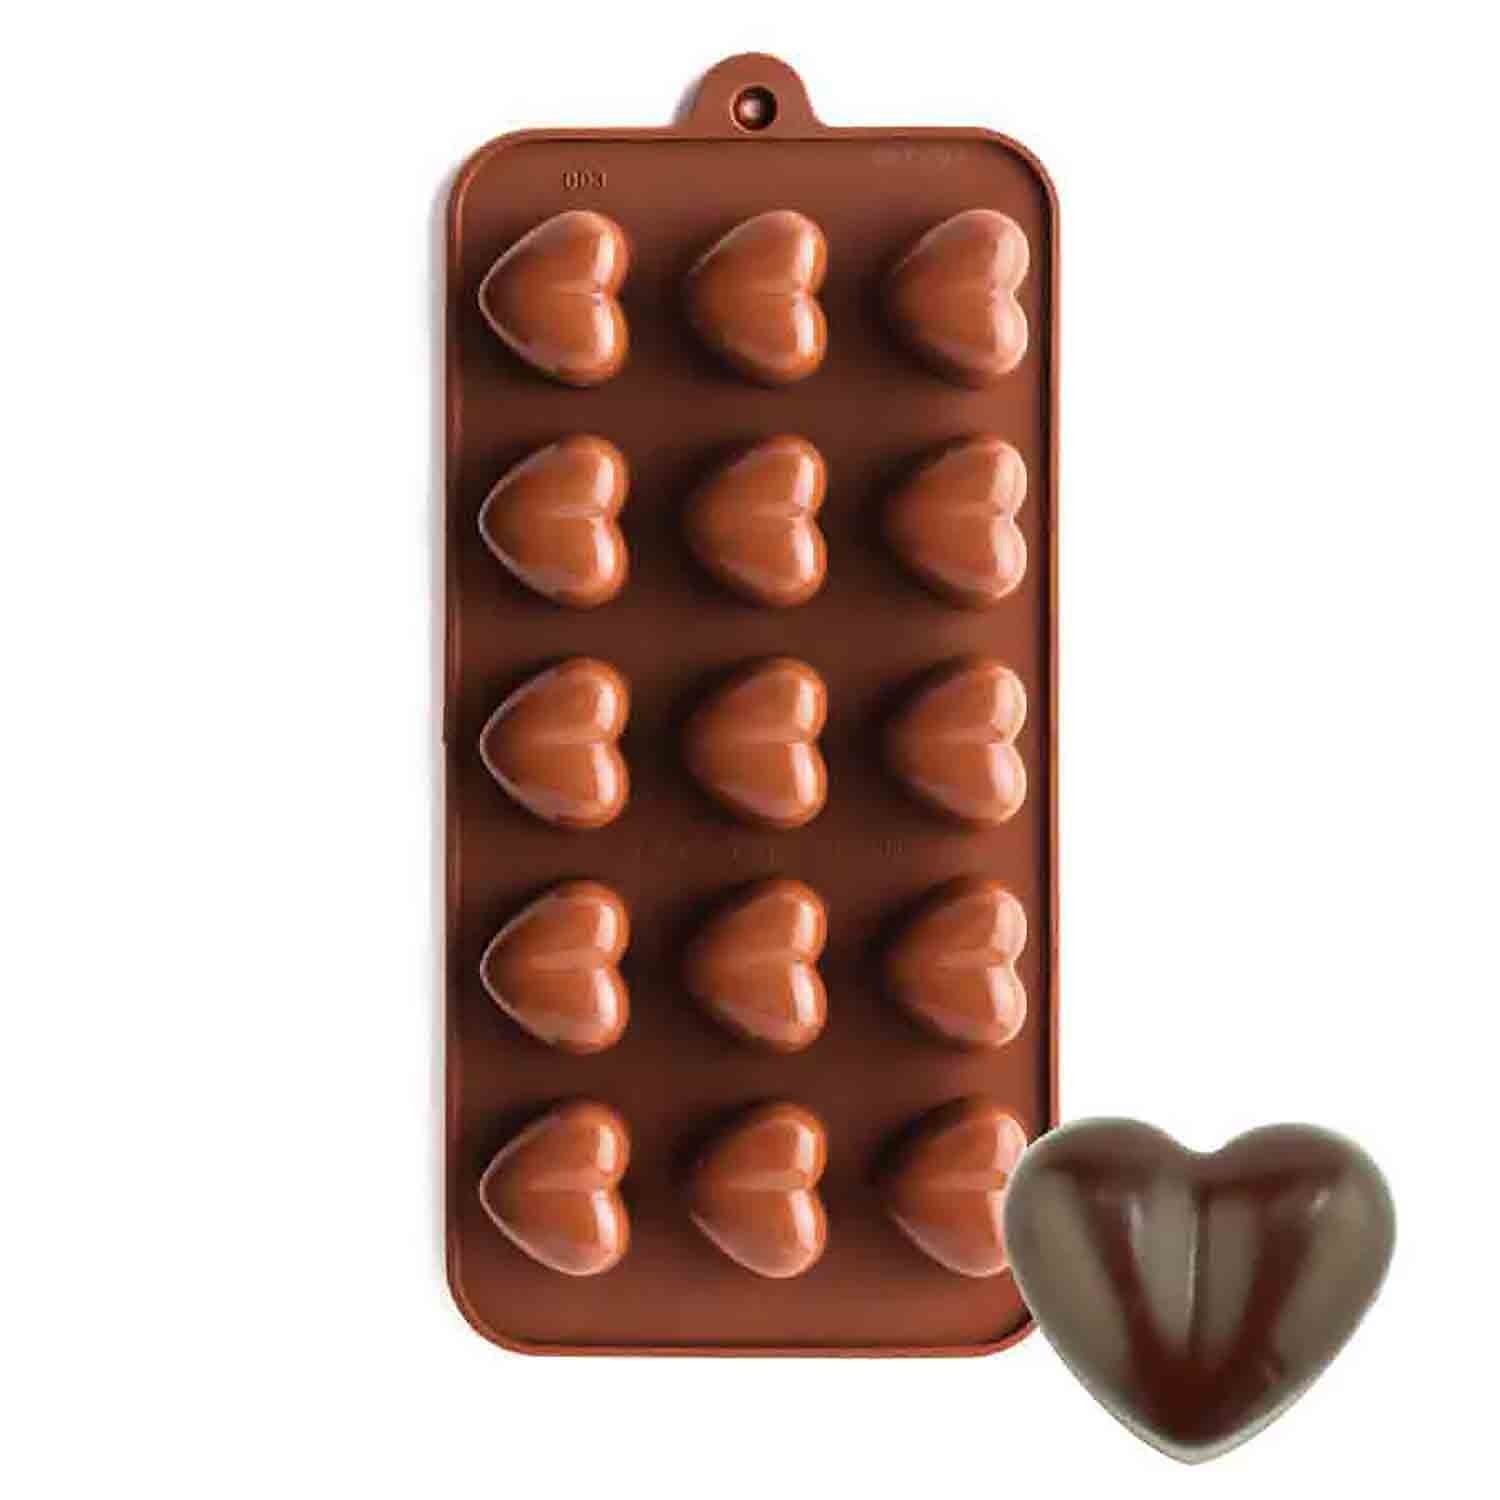 Heart Silicone Chocolate Candy Mold